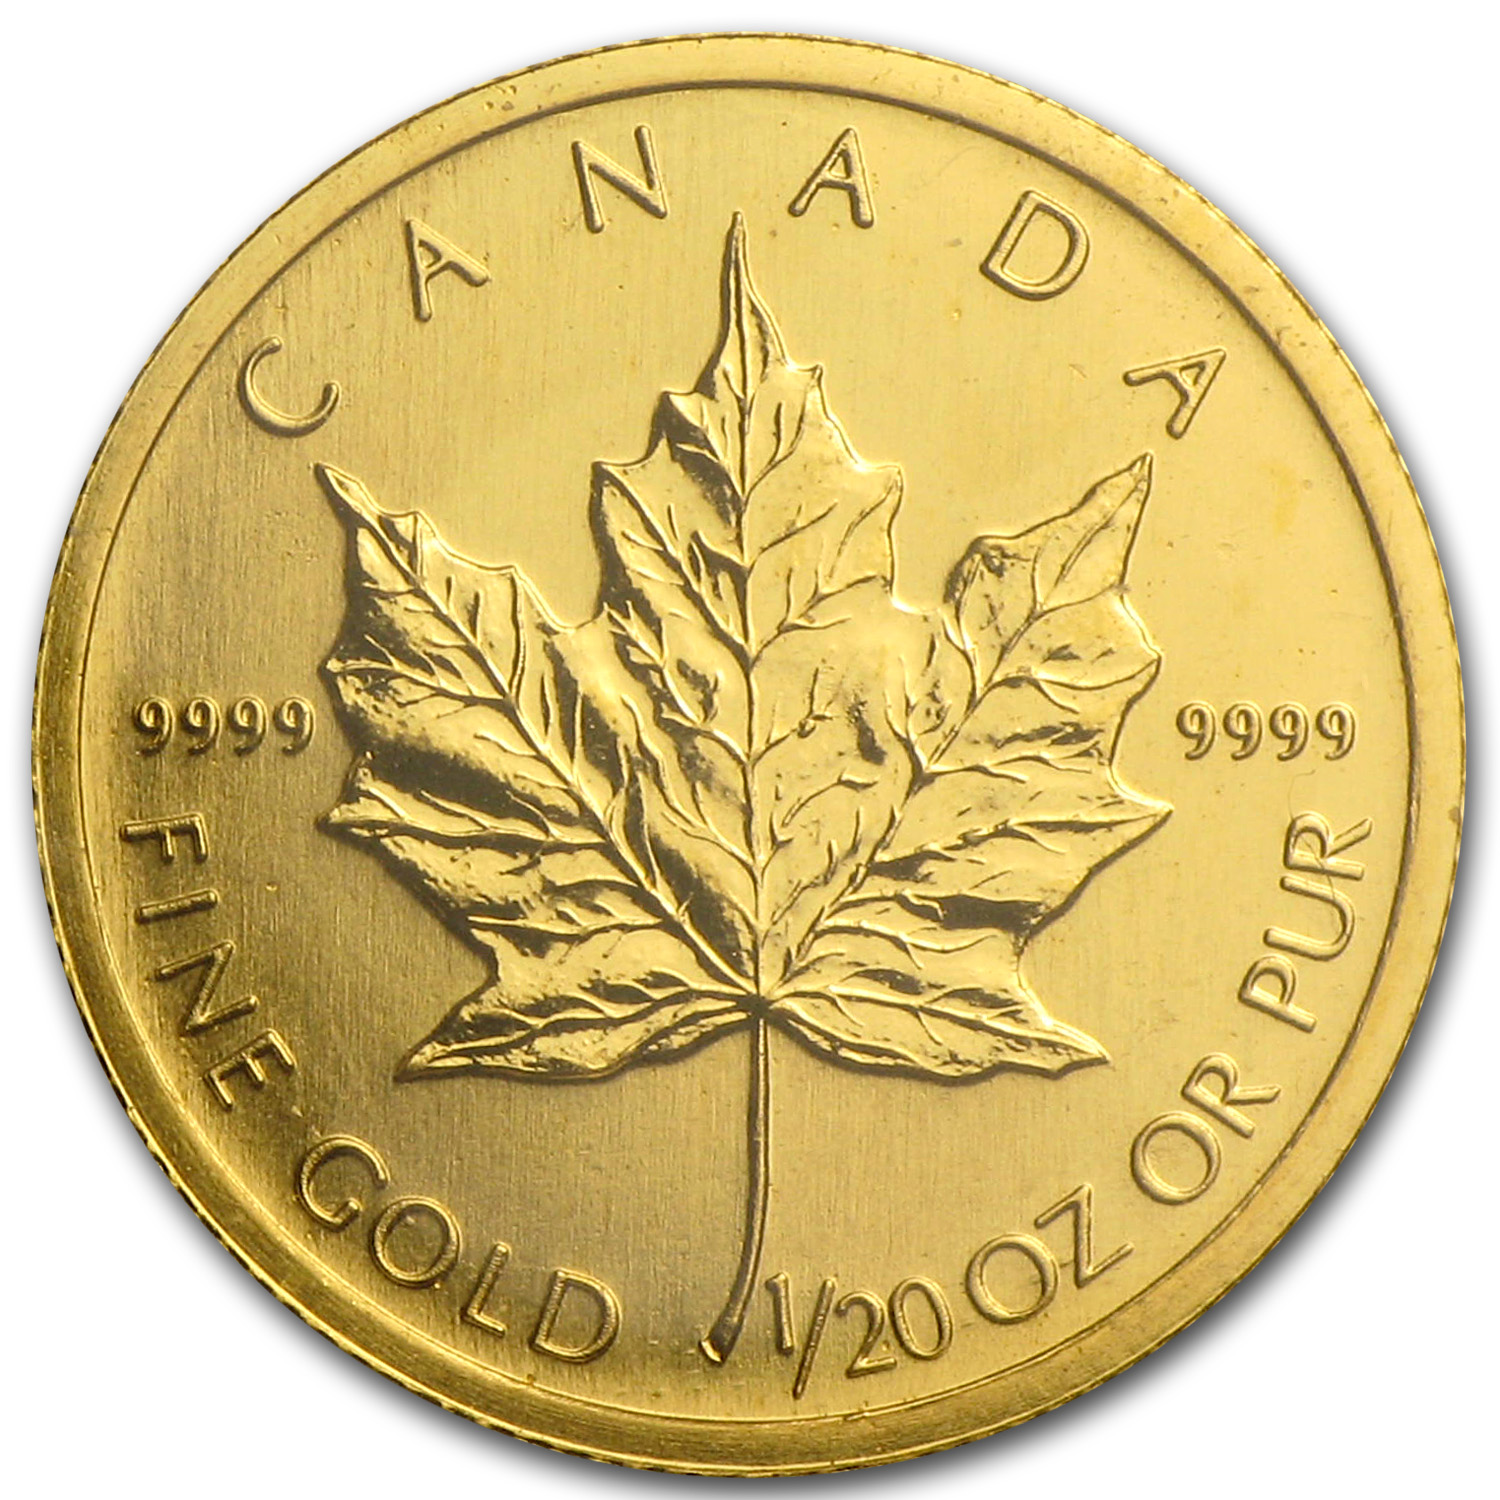 2003 1/20 oz Gold Canadian Maple Leaf